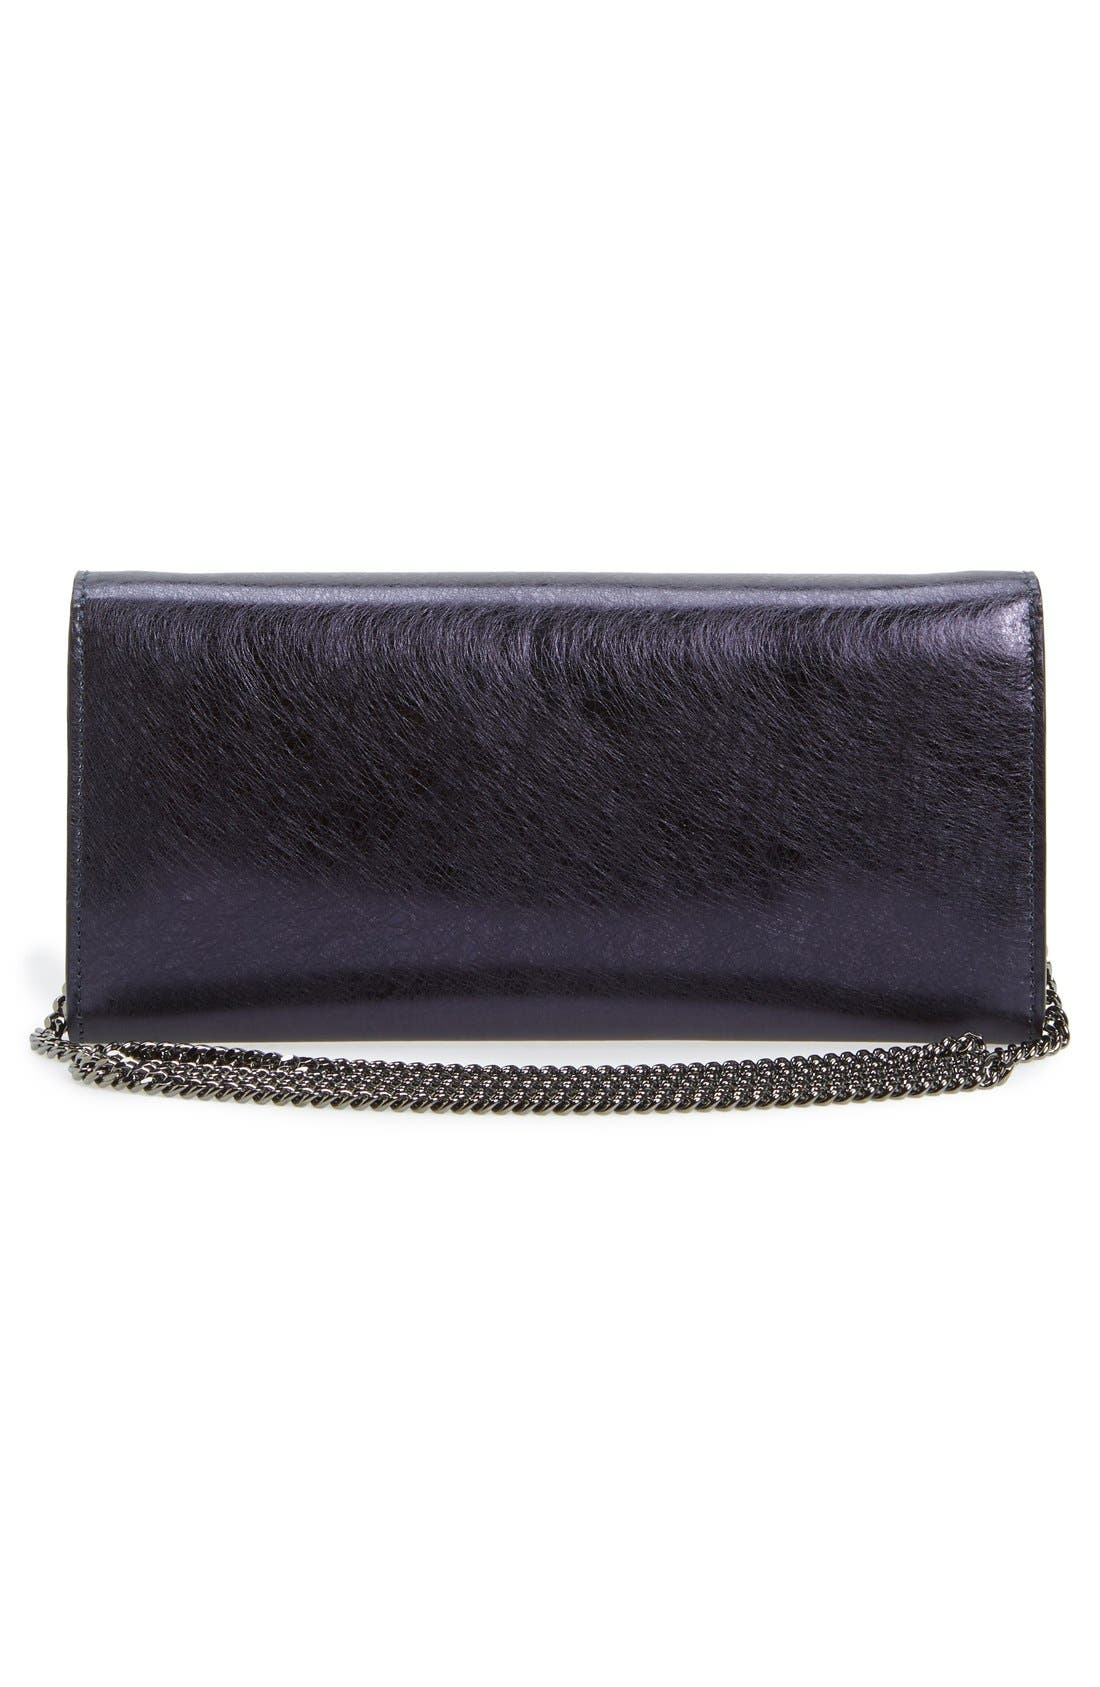 'Milla' Etched Metallic Spazzolato Leather Flap Clutch,                             Alternate thumbnail 3, color,                             410